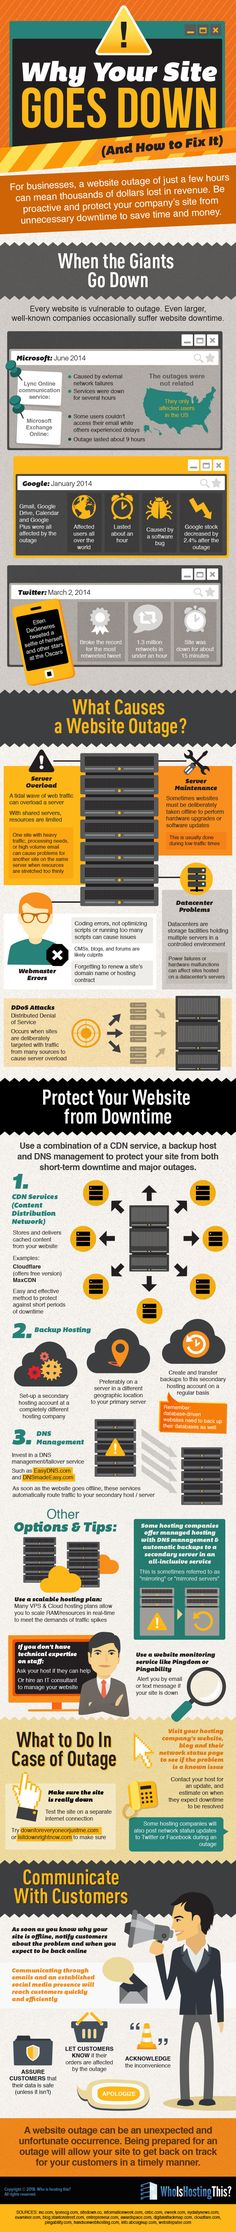 Why Your Site Goes Down And How to Fix It #infographic #Business #Website